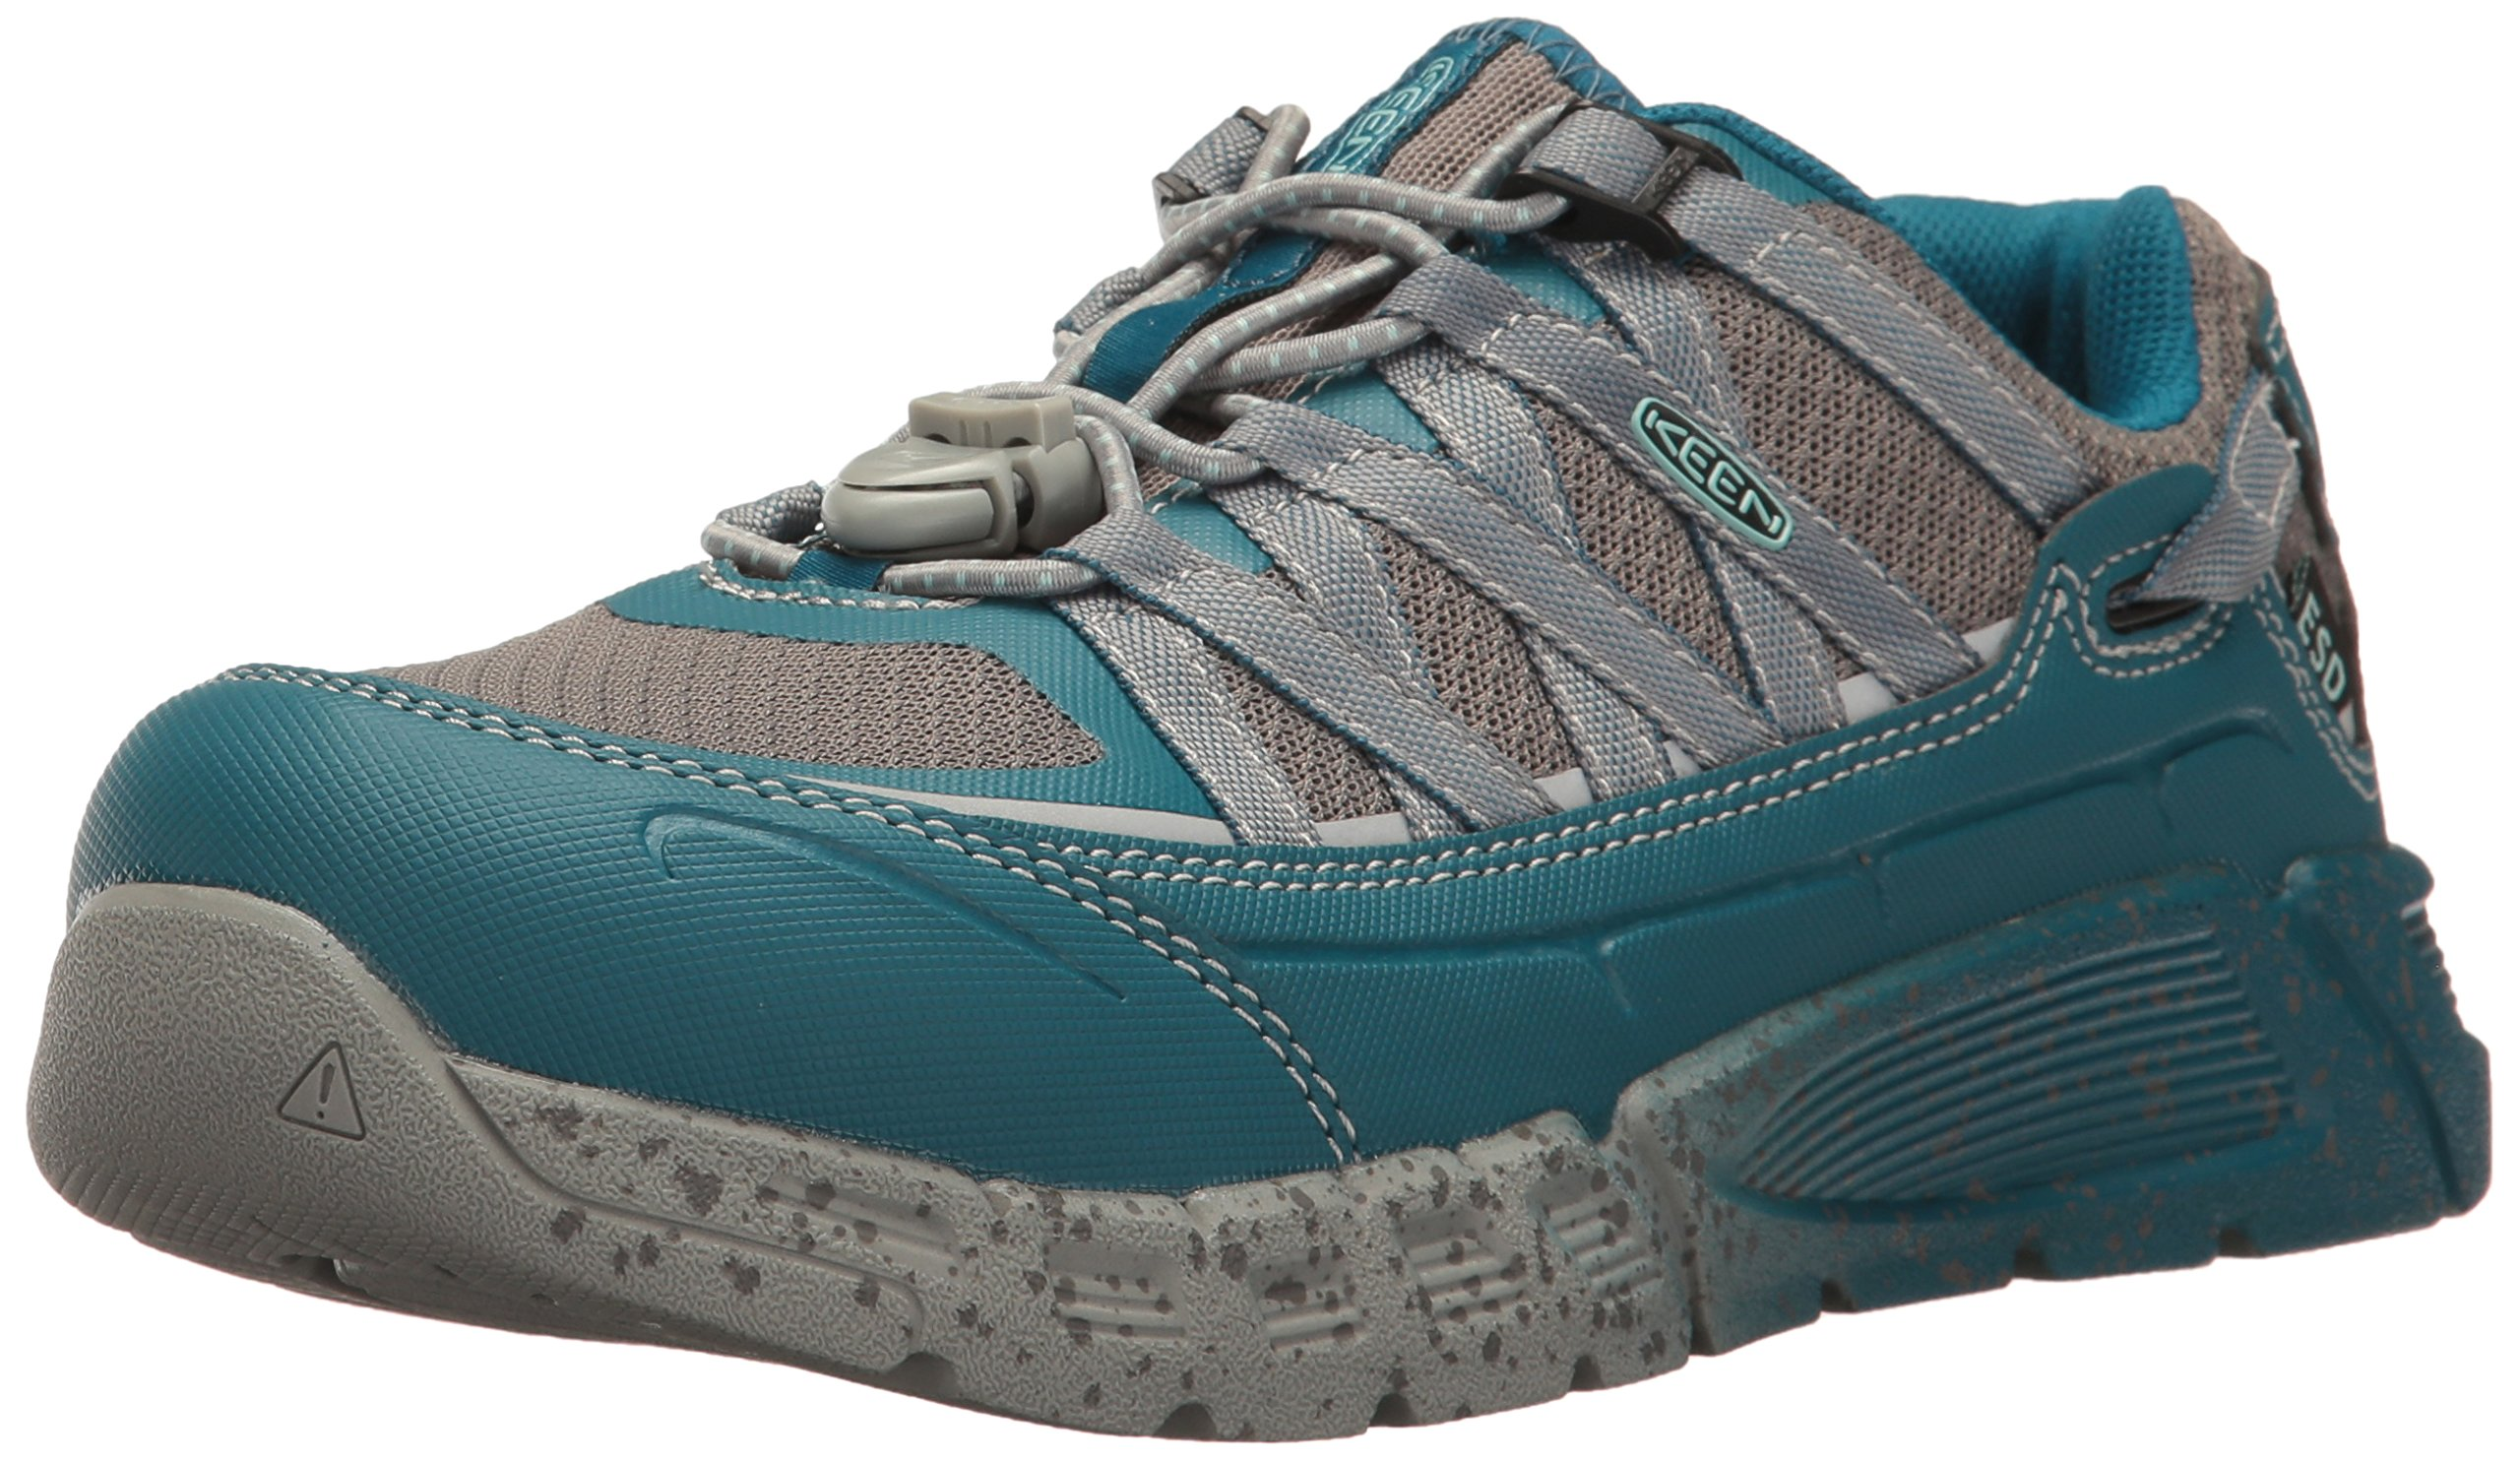 KEEN Utility Women's Asheville at ESD Industrial and Construction Shoe, Ink Blue/Eggshell Blue, 7 M US